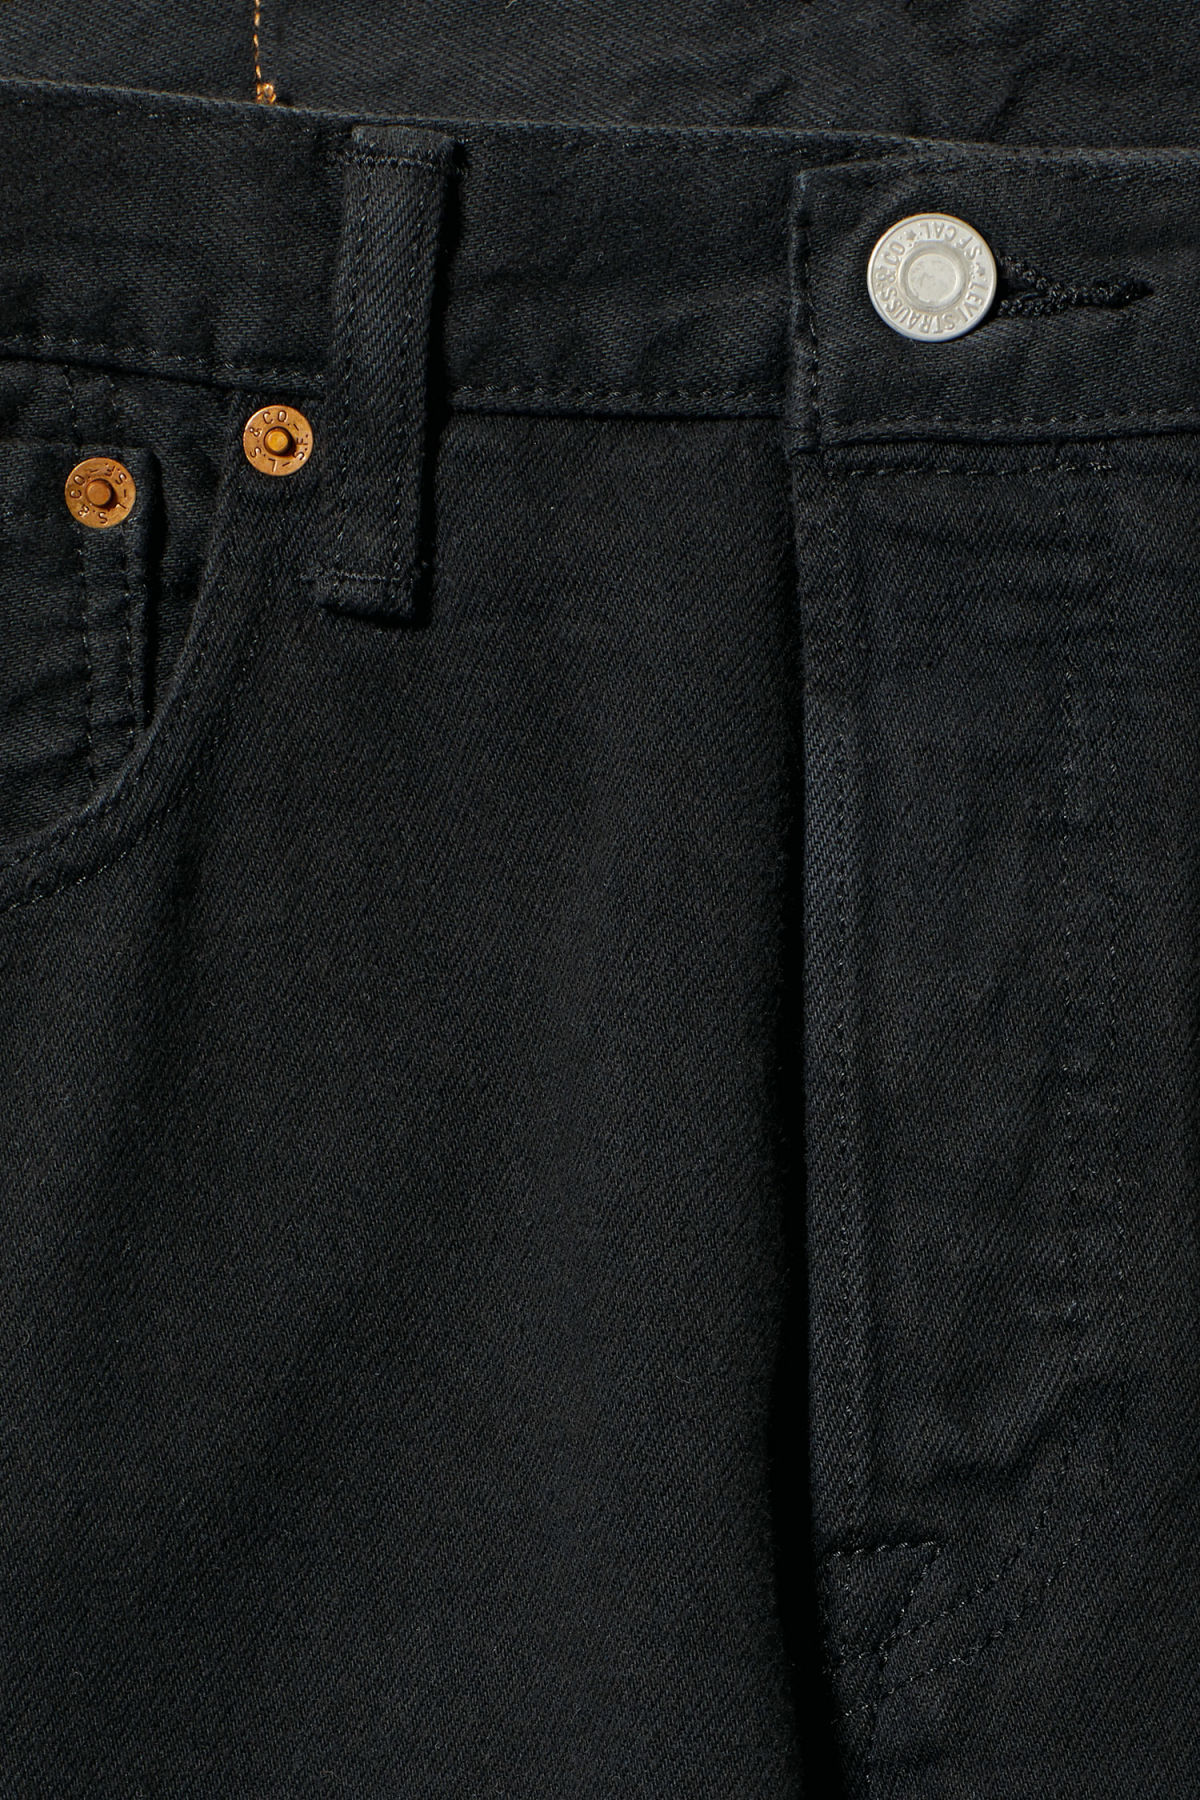 Detailed image of Weekday 501 original black jeans in black